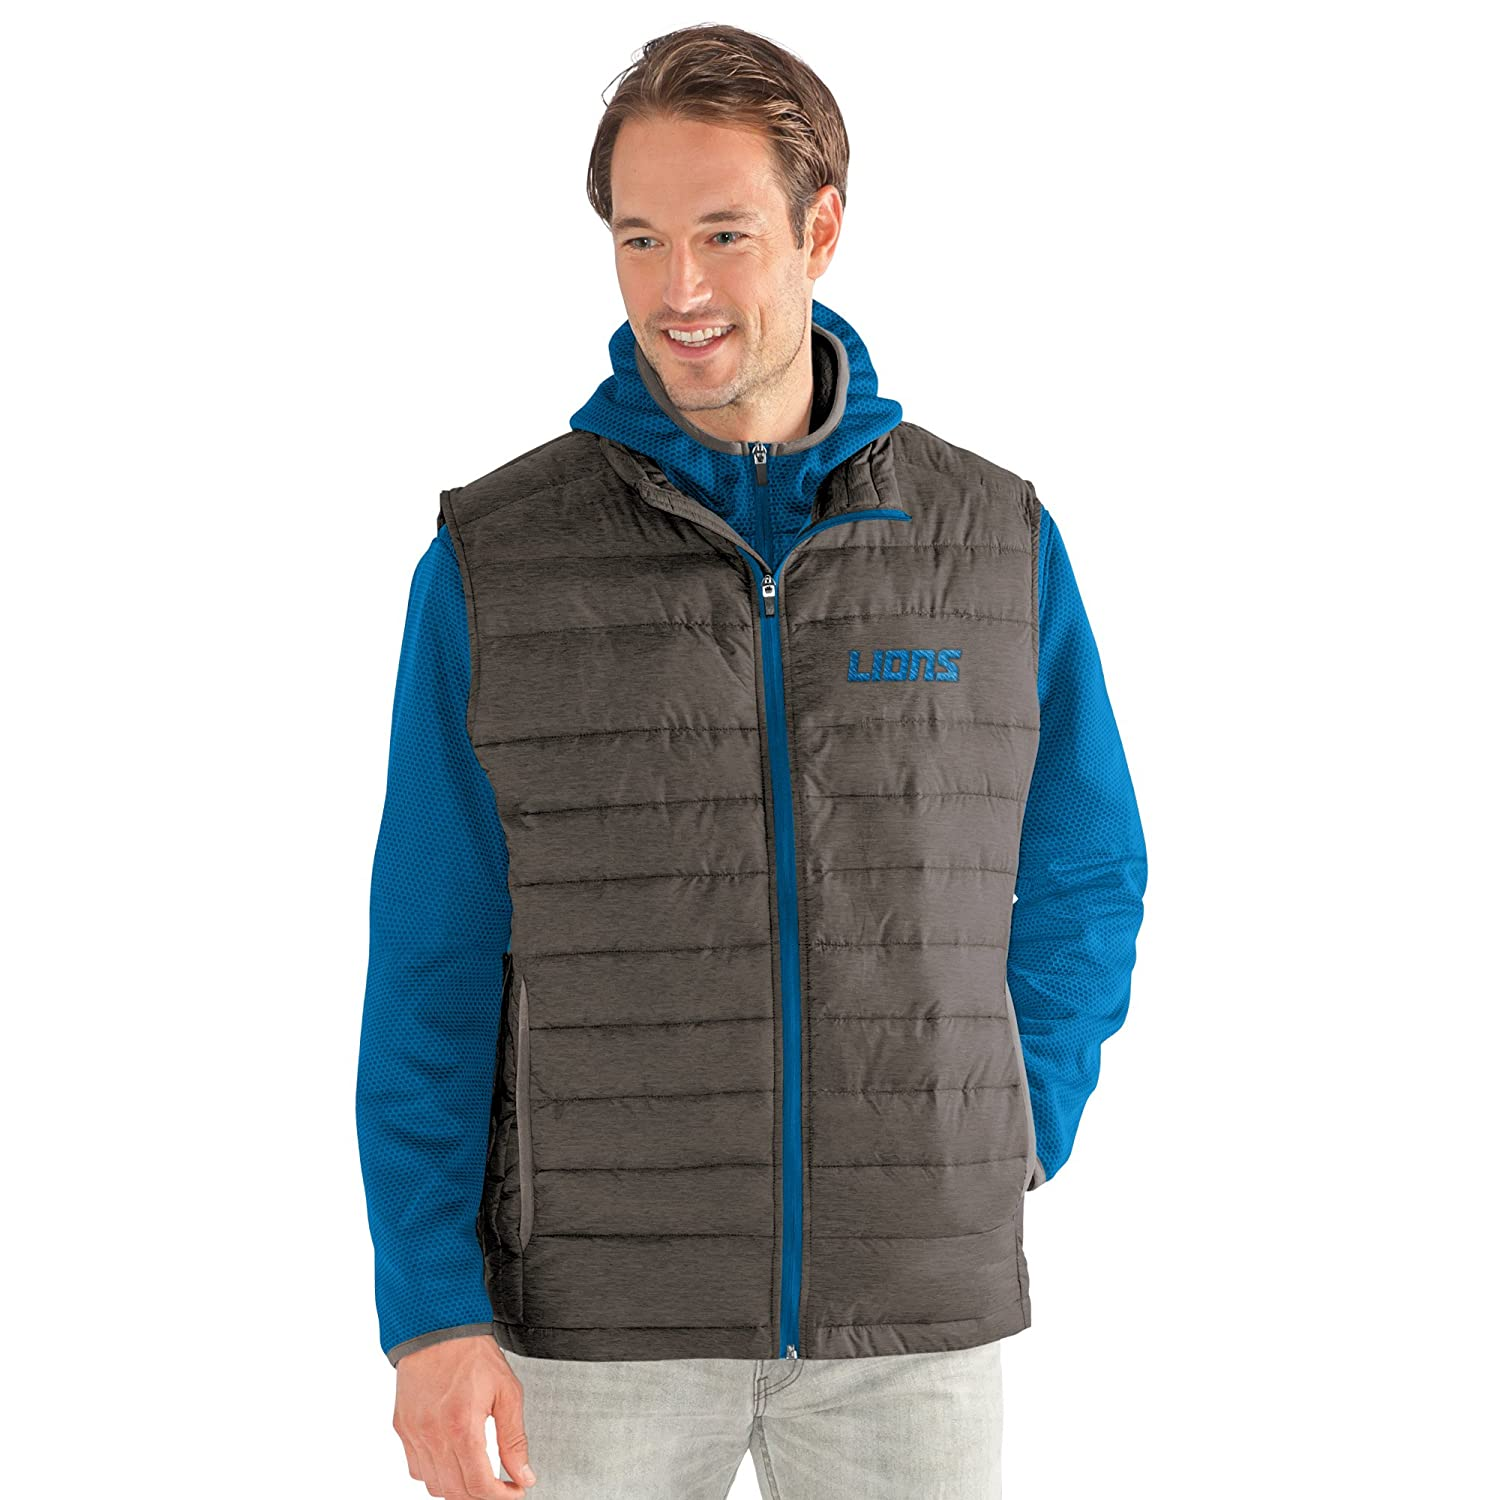 Large G-III Mens Cold Front 3-in-1 Systems Jacket Royal//Gray